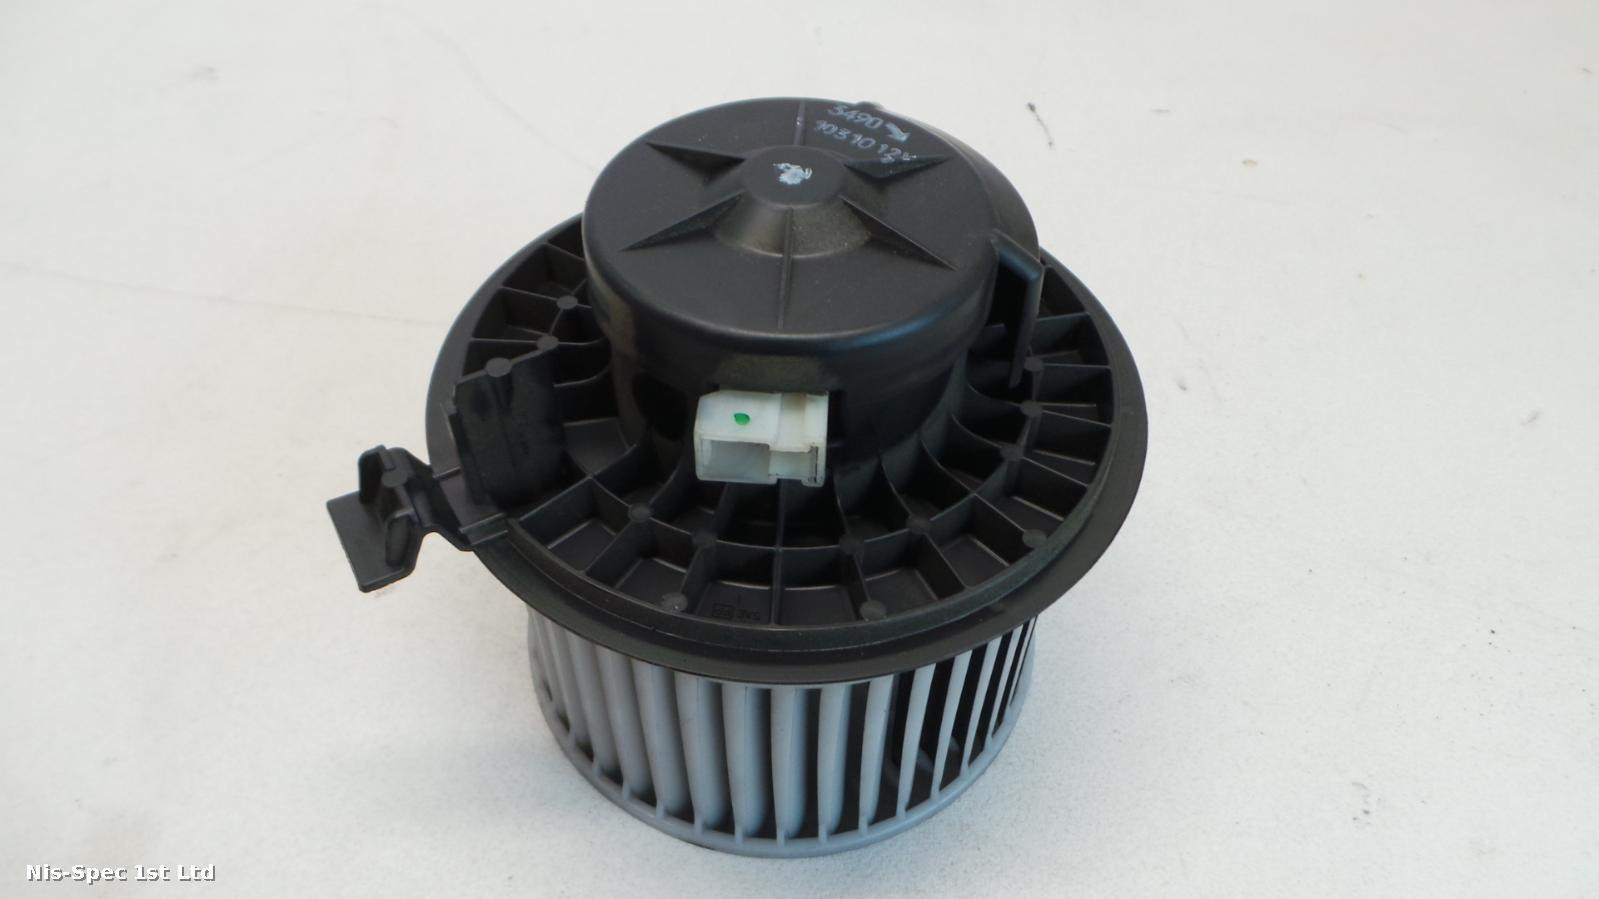 NV200 10-14 HEATER MOTOR PART NUMBER 27226 EE91B